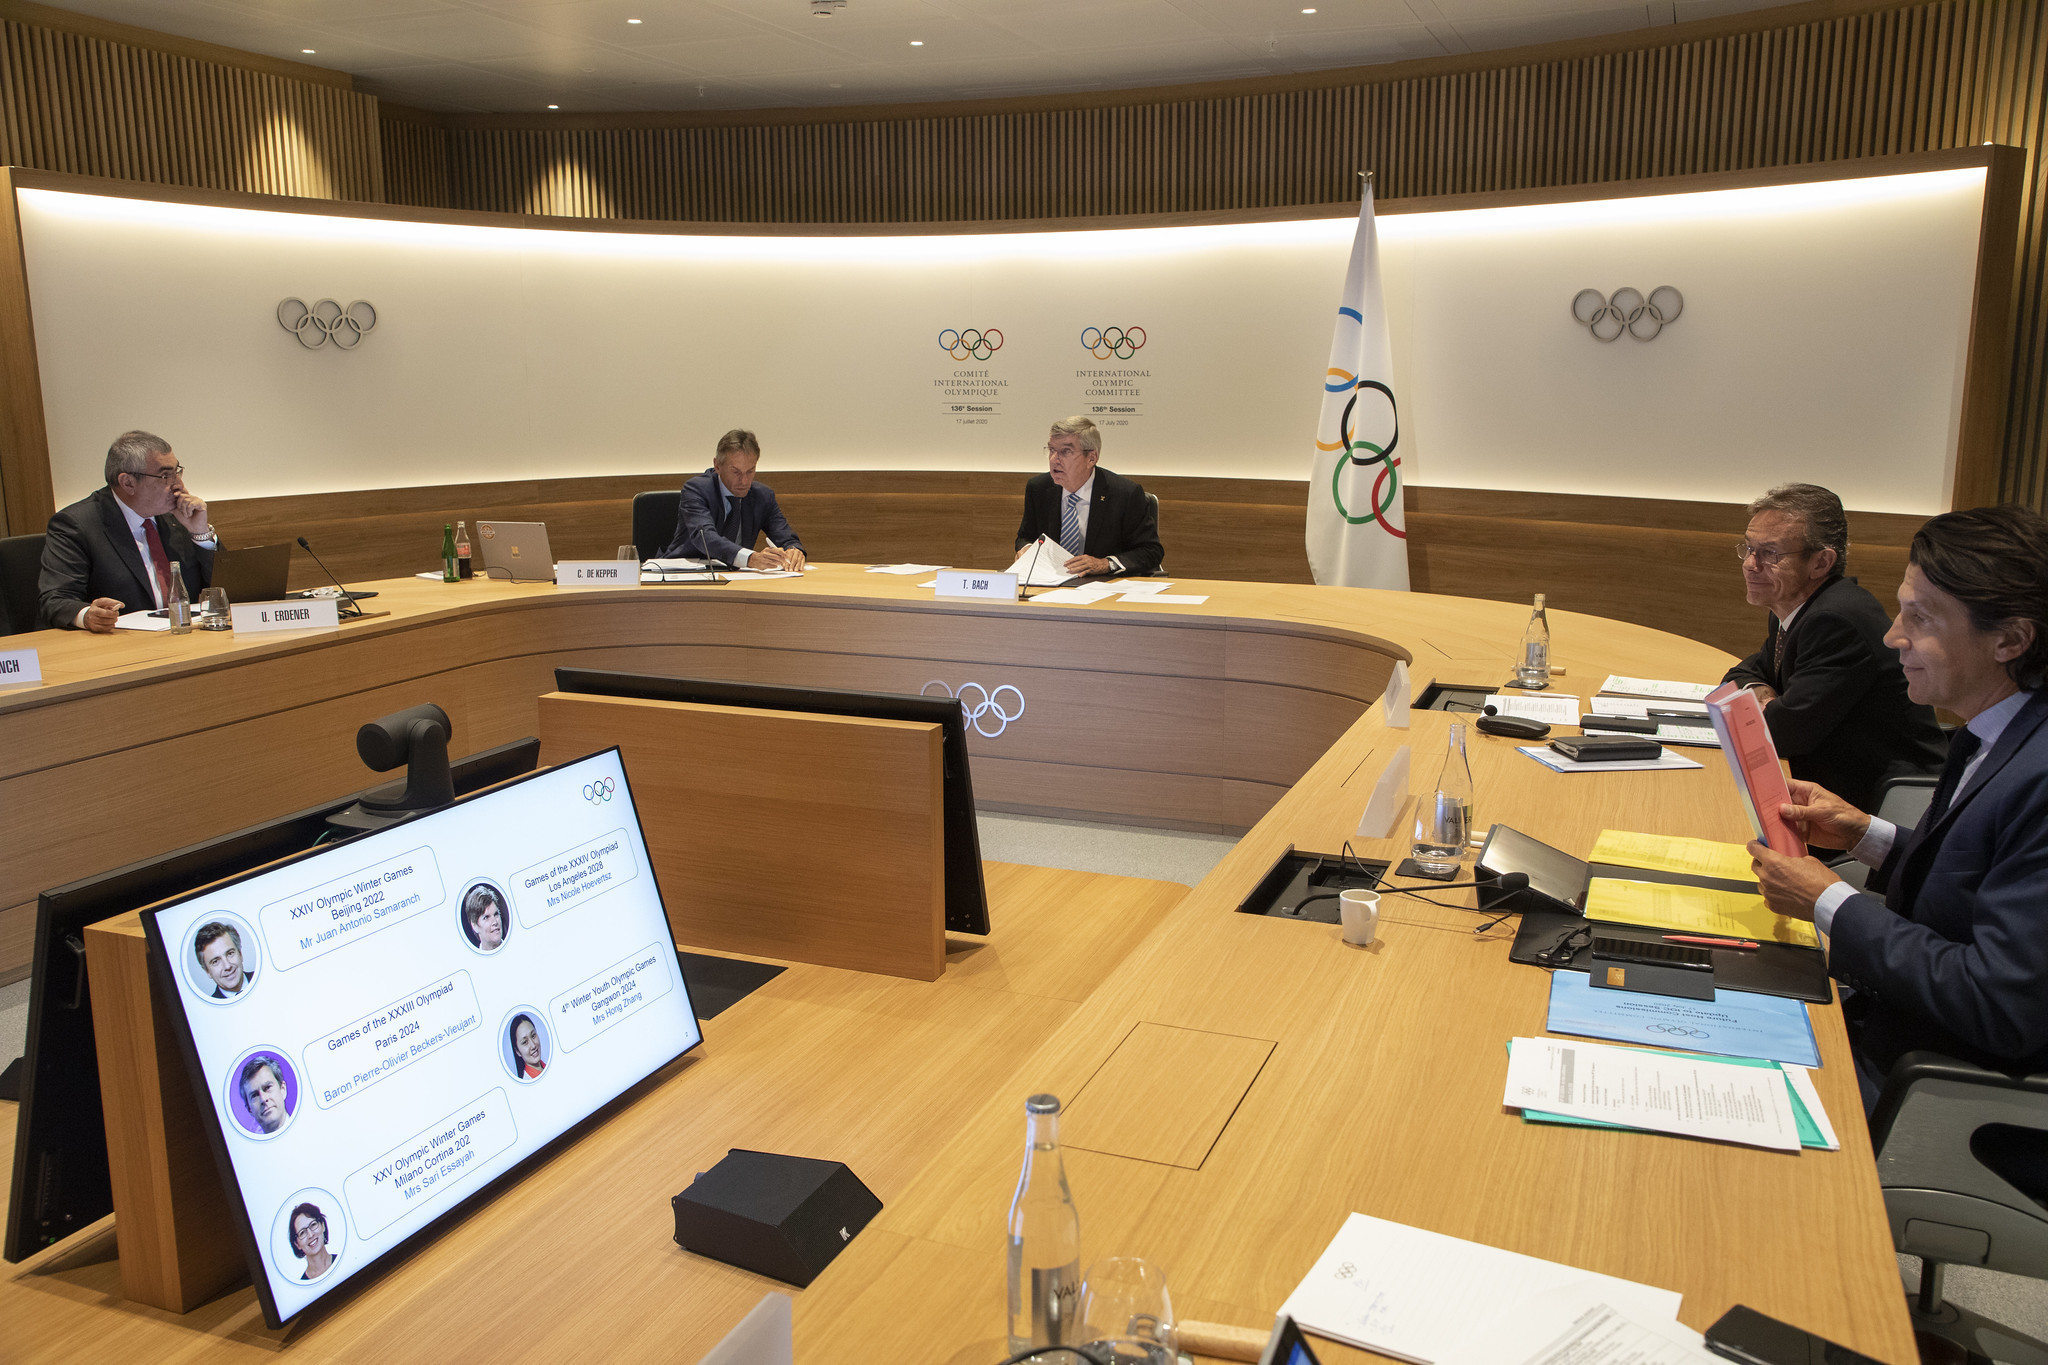 Thomas Bach confirmed he would seek re-election during the IOC's first virtual Session ©IOC